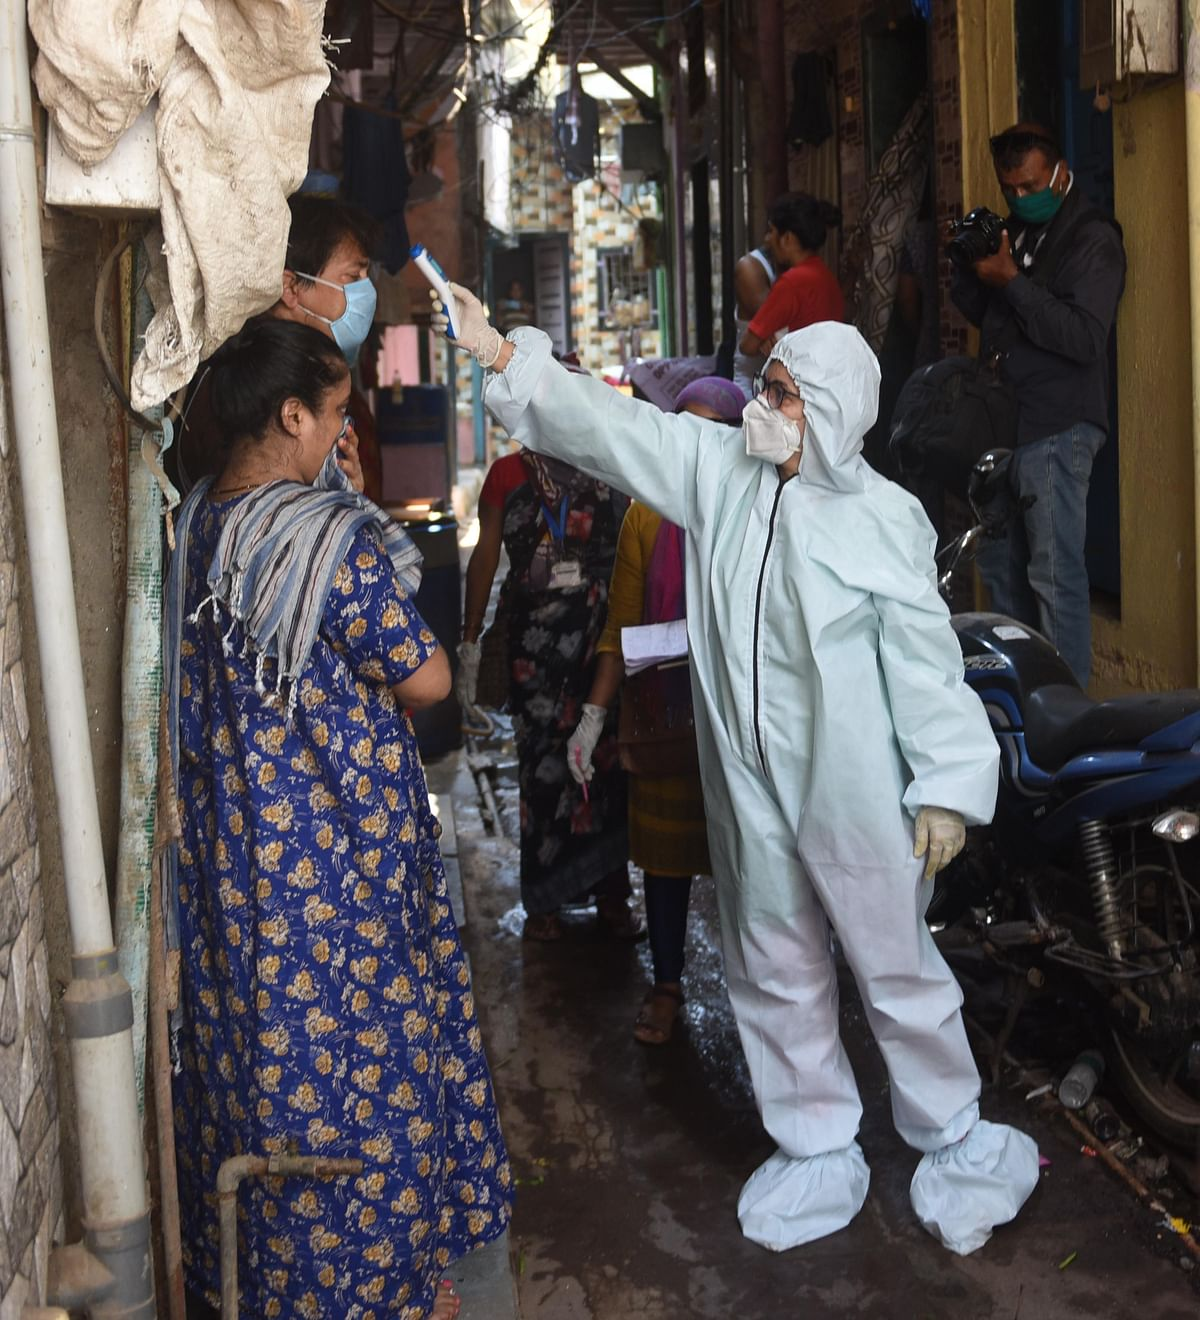 Coronavirus in Thane: Number of containment zones in the city goes down; testing ramped up